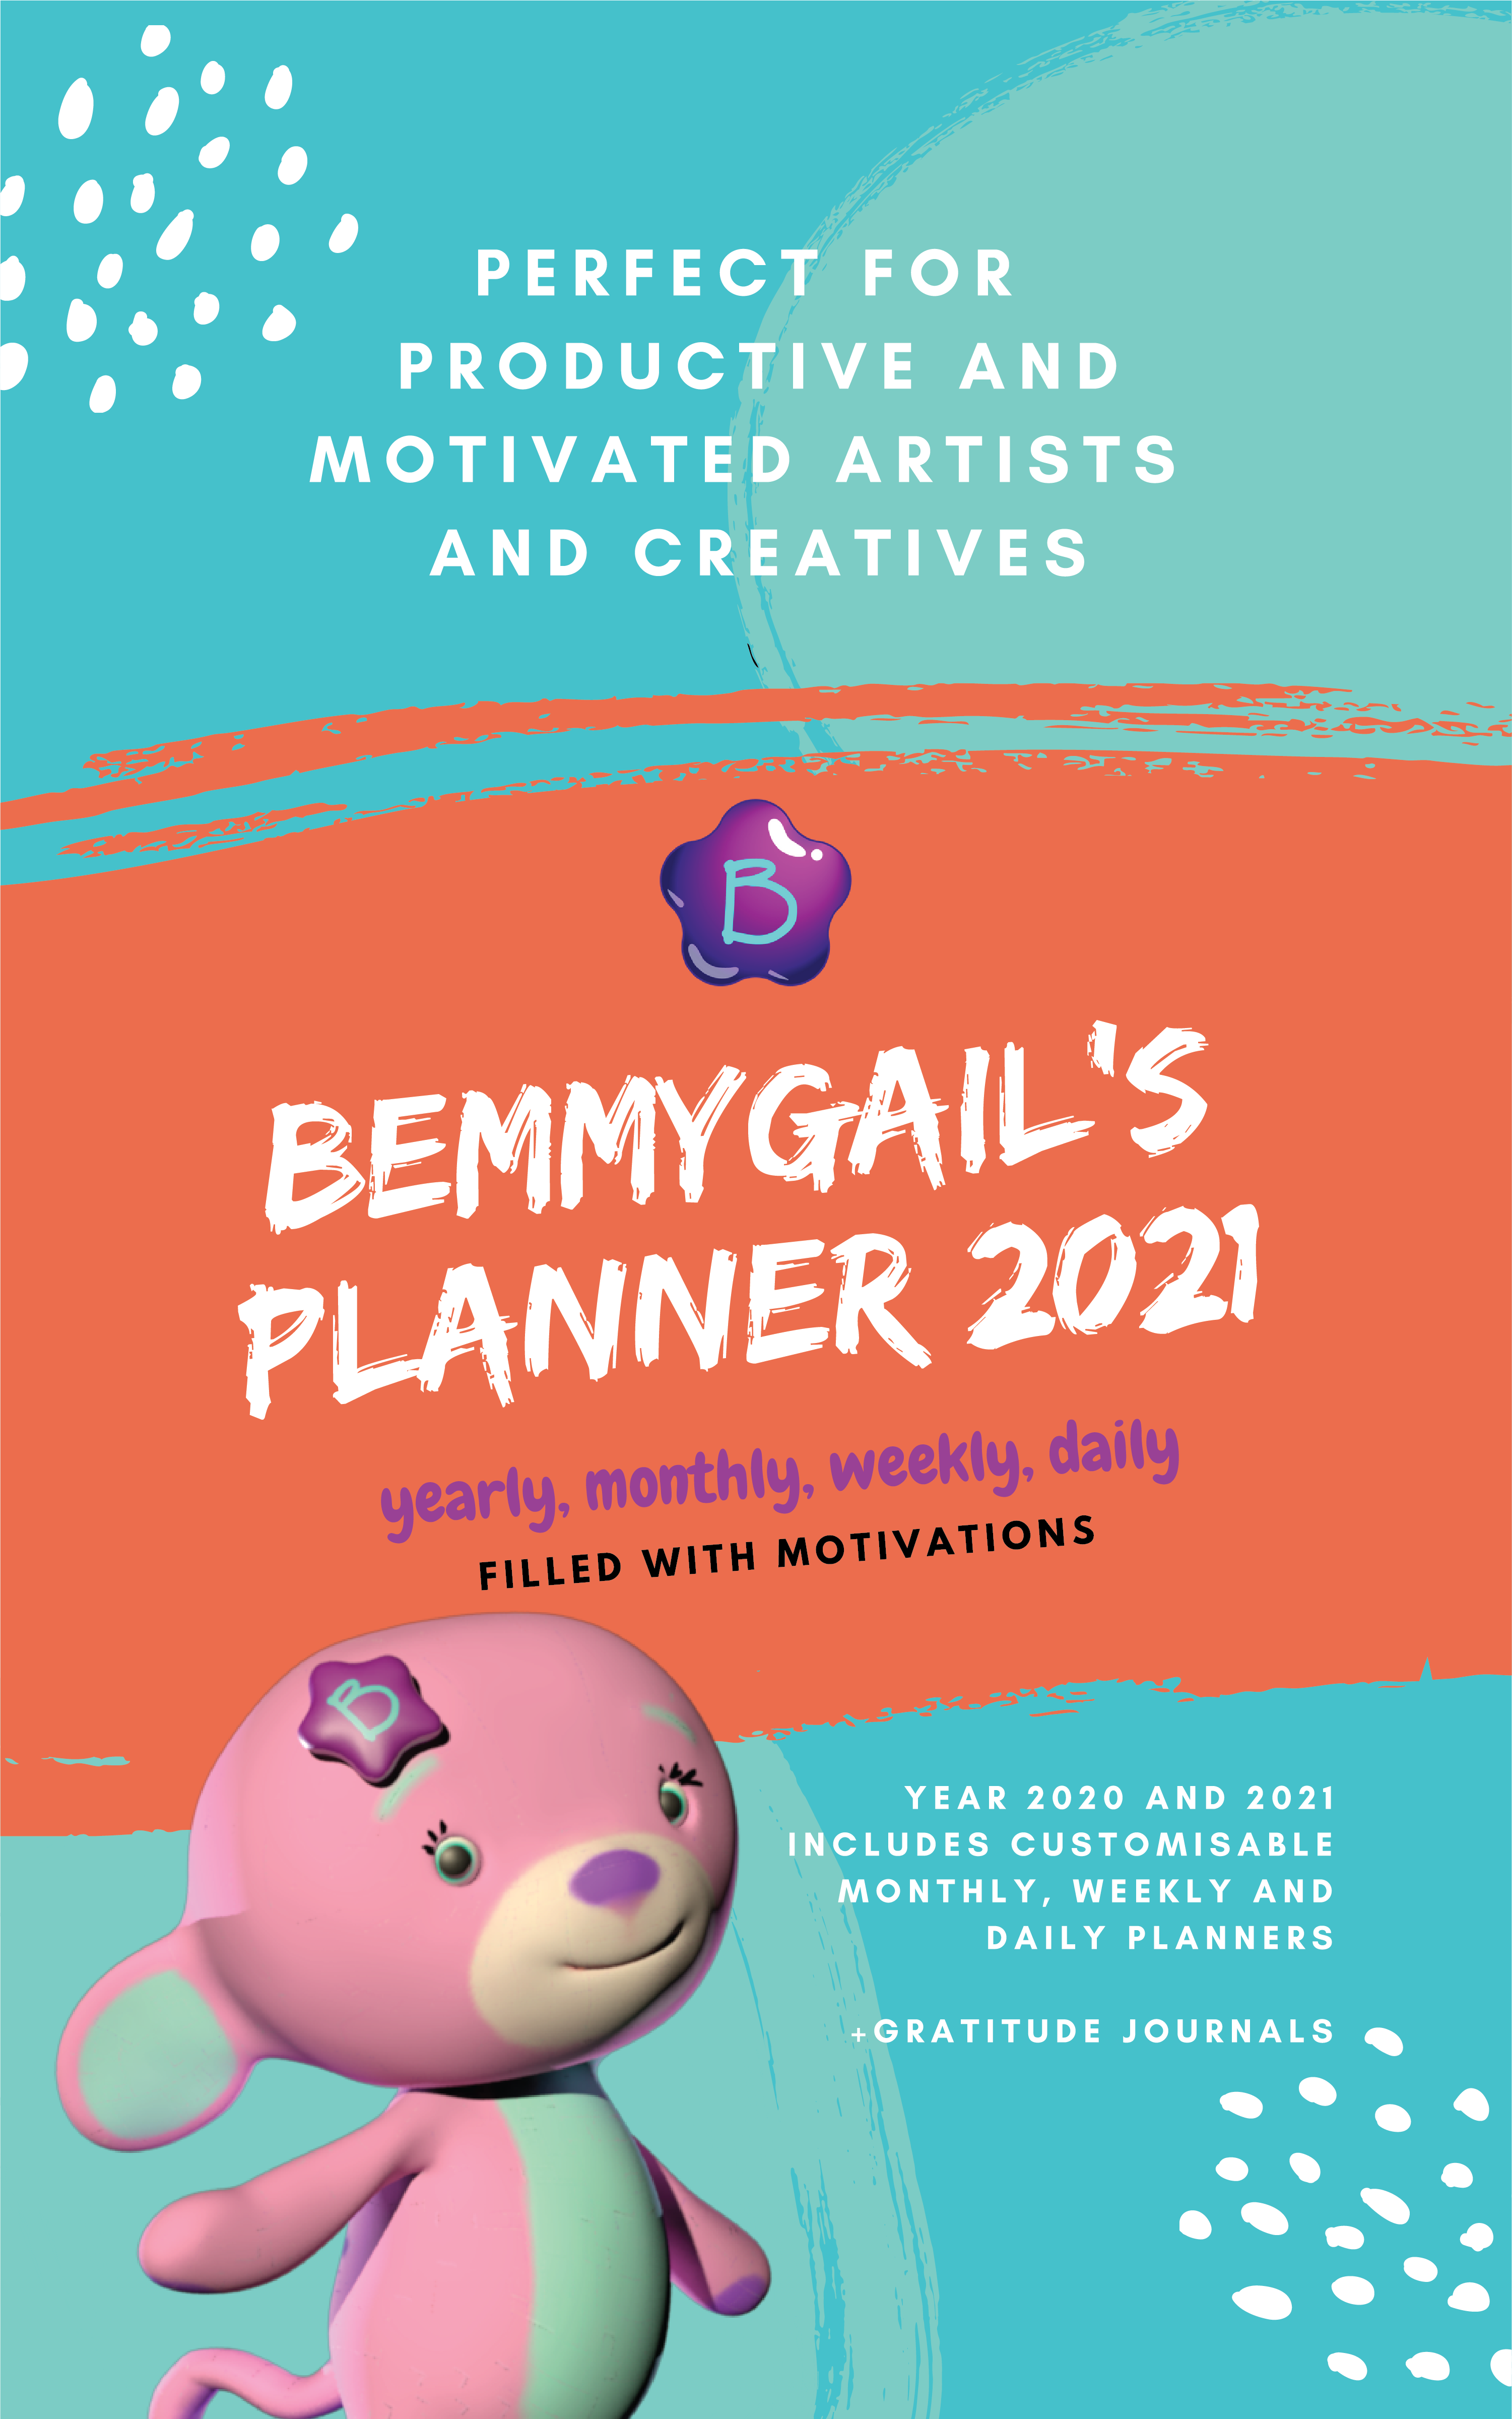 Bemmygail's Planner 2021: Perfect For Productive And Motivated Artists And Creatives